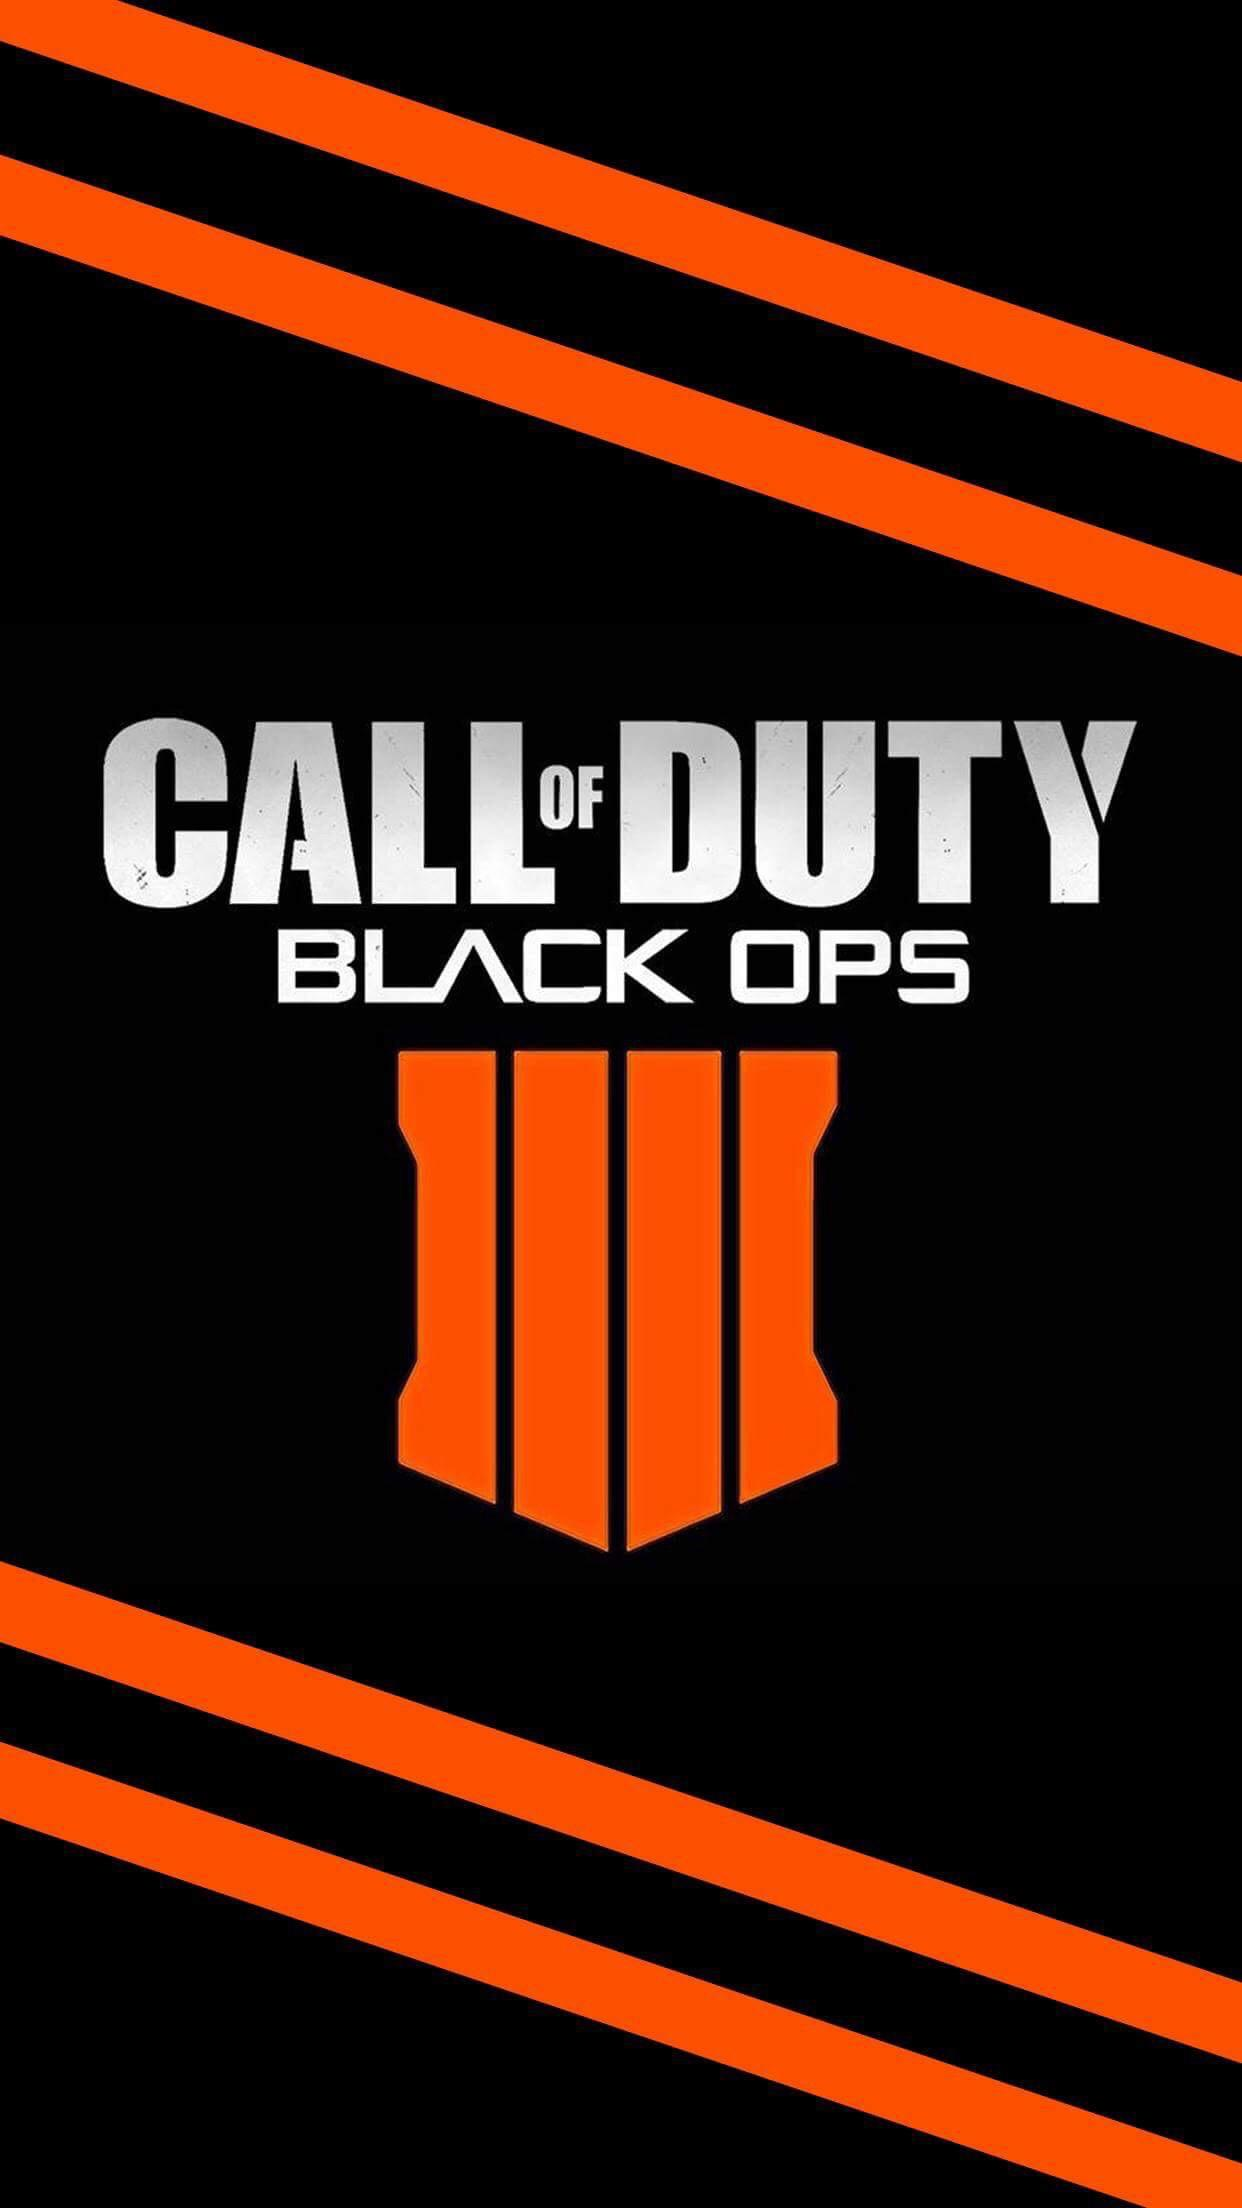 Call Of Duty Black Ops 4 Wallpapers Top Free Call Of Duty Black